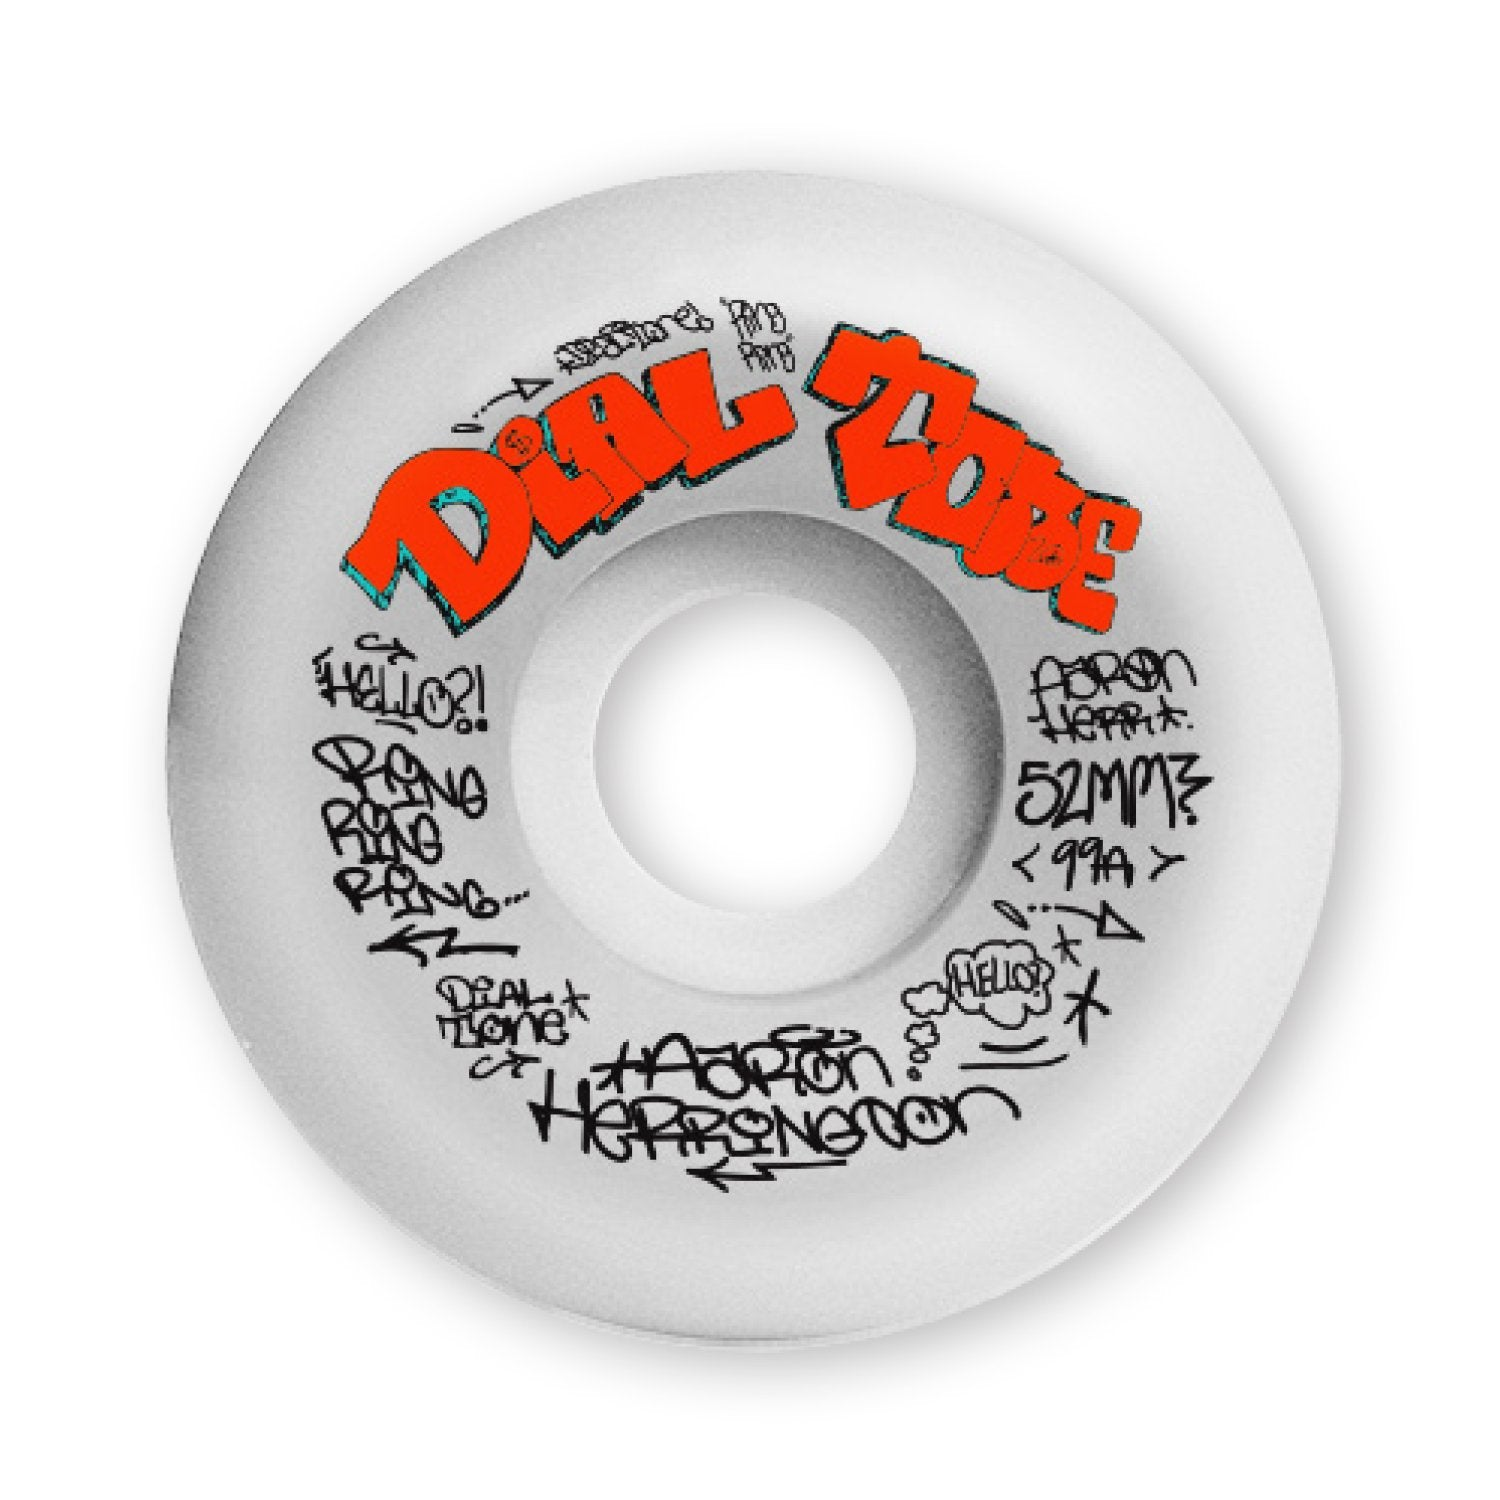 Dial Tone Wheels Herrington Vandal 2 Conical 99a 52mm